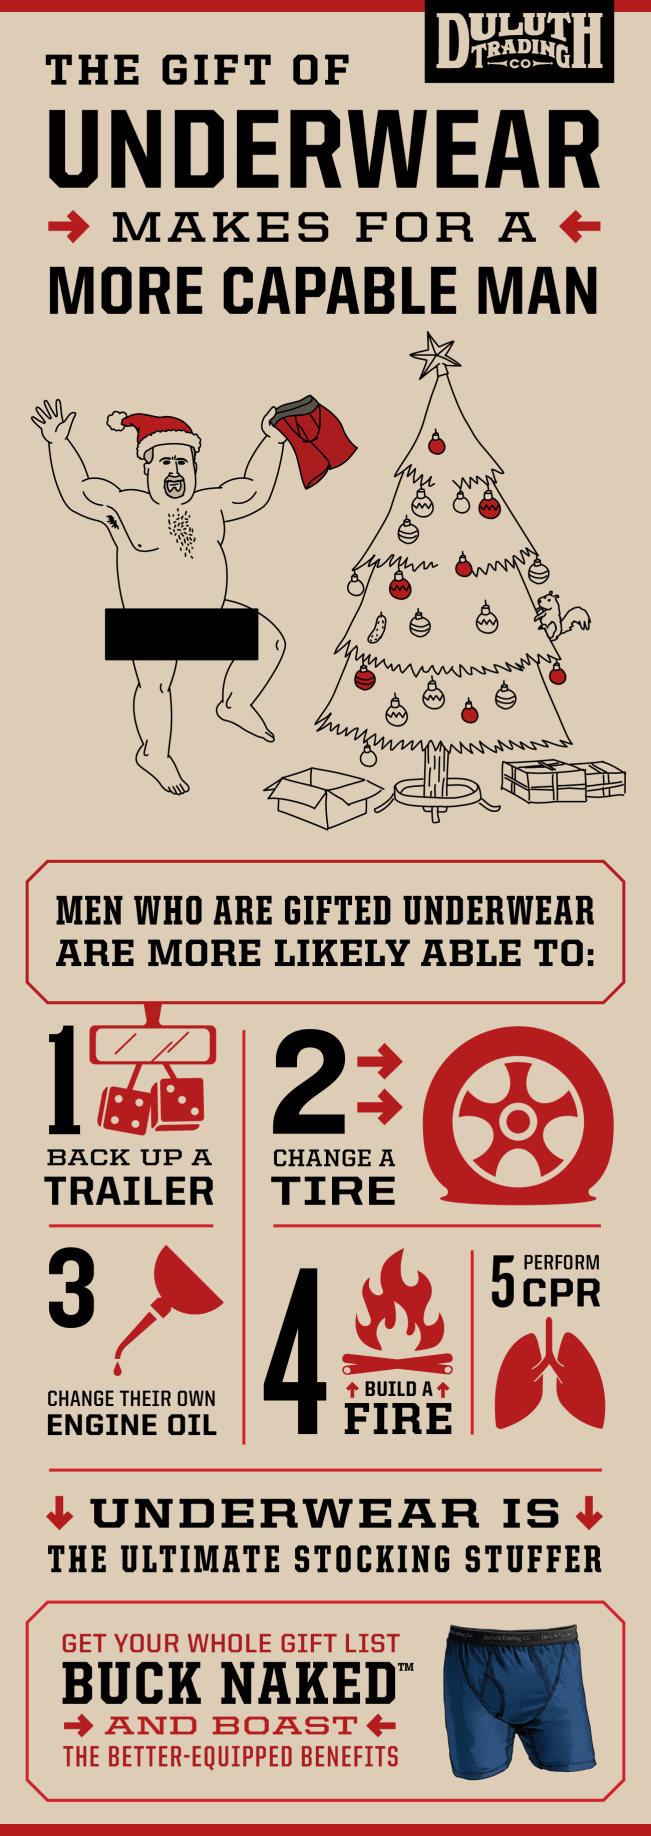 Buck Naked™ Nation | Skivvy Stats | Underwear Gifts for Men